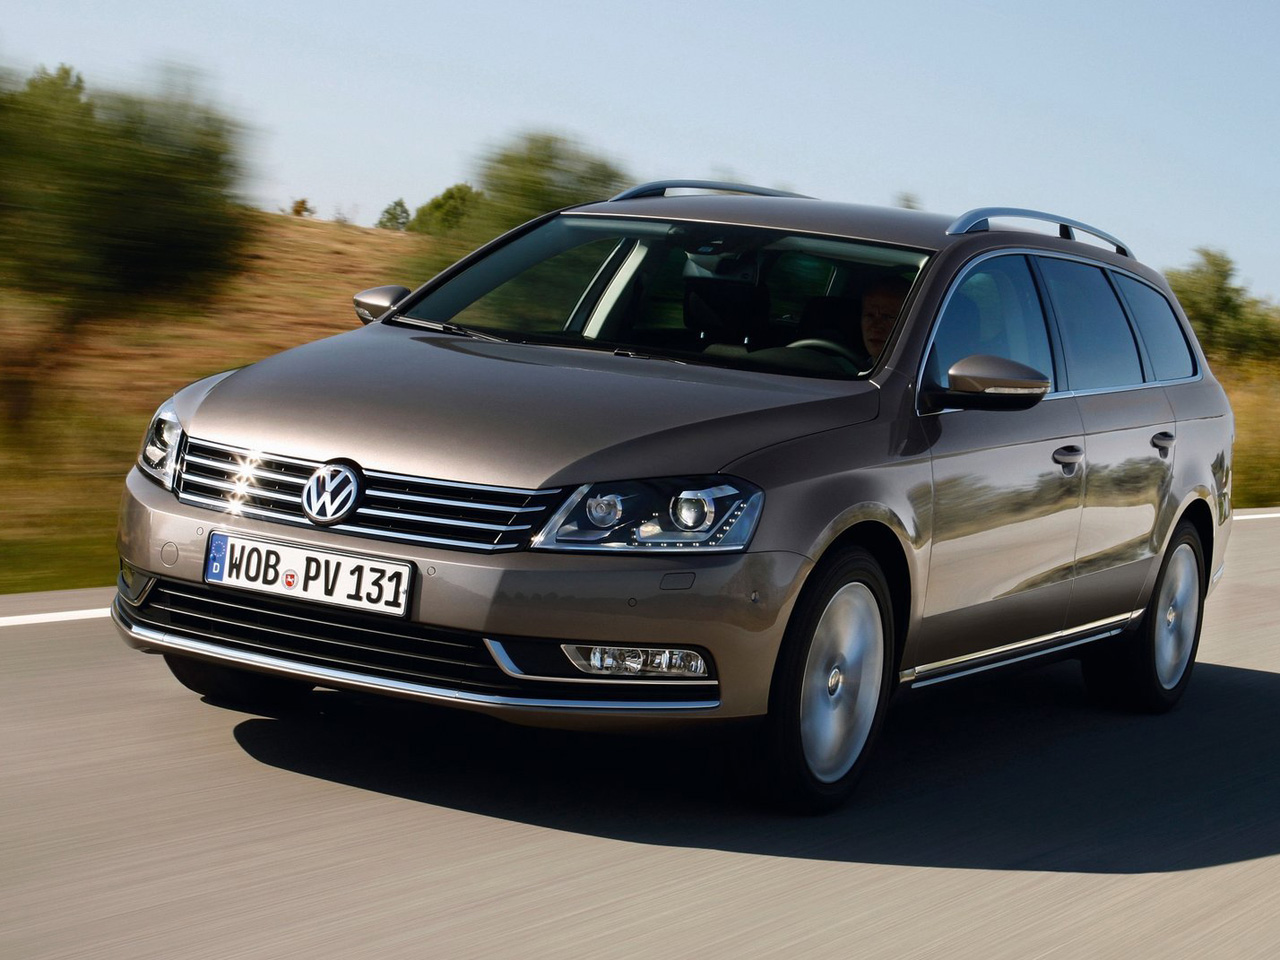 vw passat variant 2 0 tdi technical details history. Black Bedroom Furniture Sets. Home Design Ideas